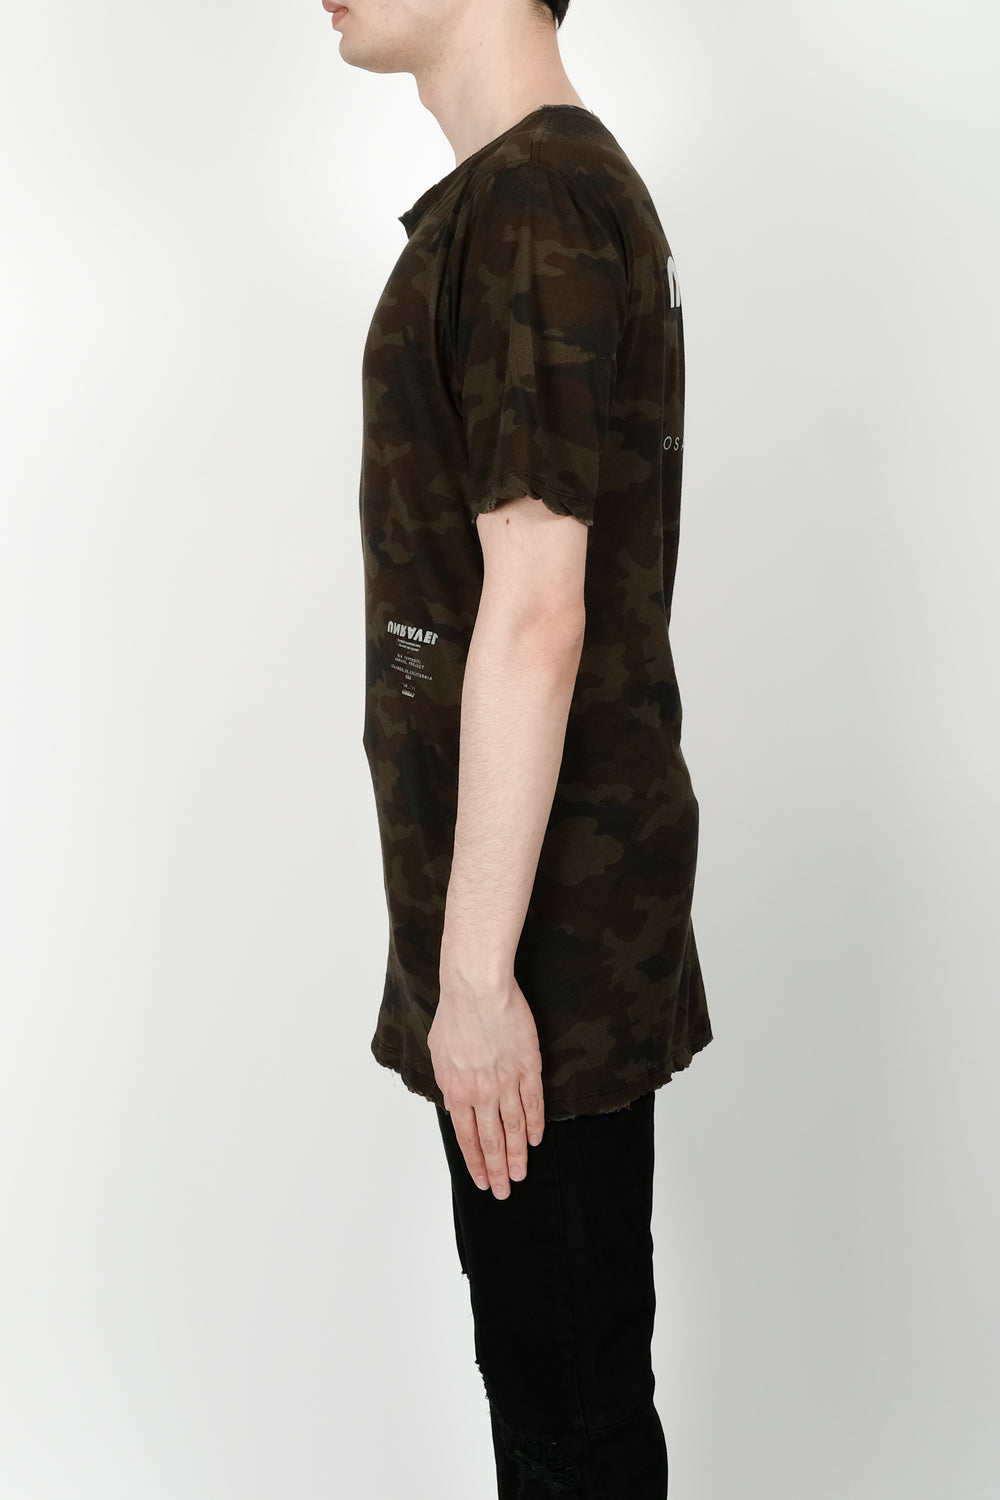 UNRAVEL Tour Skate Tee In Camo